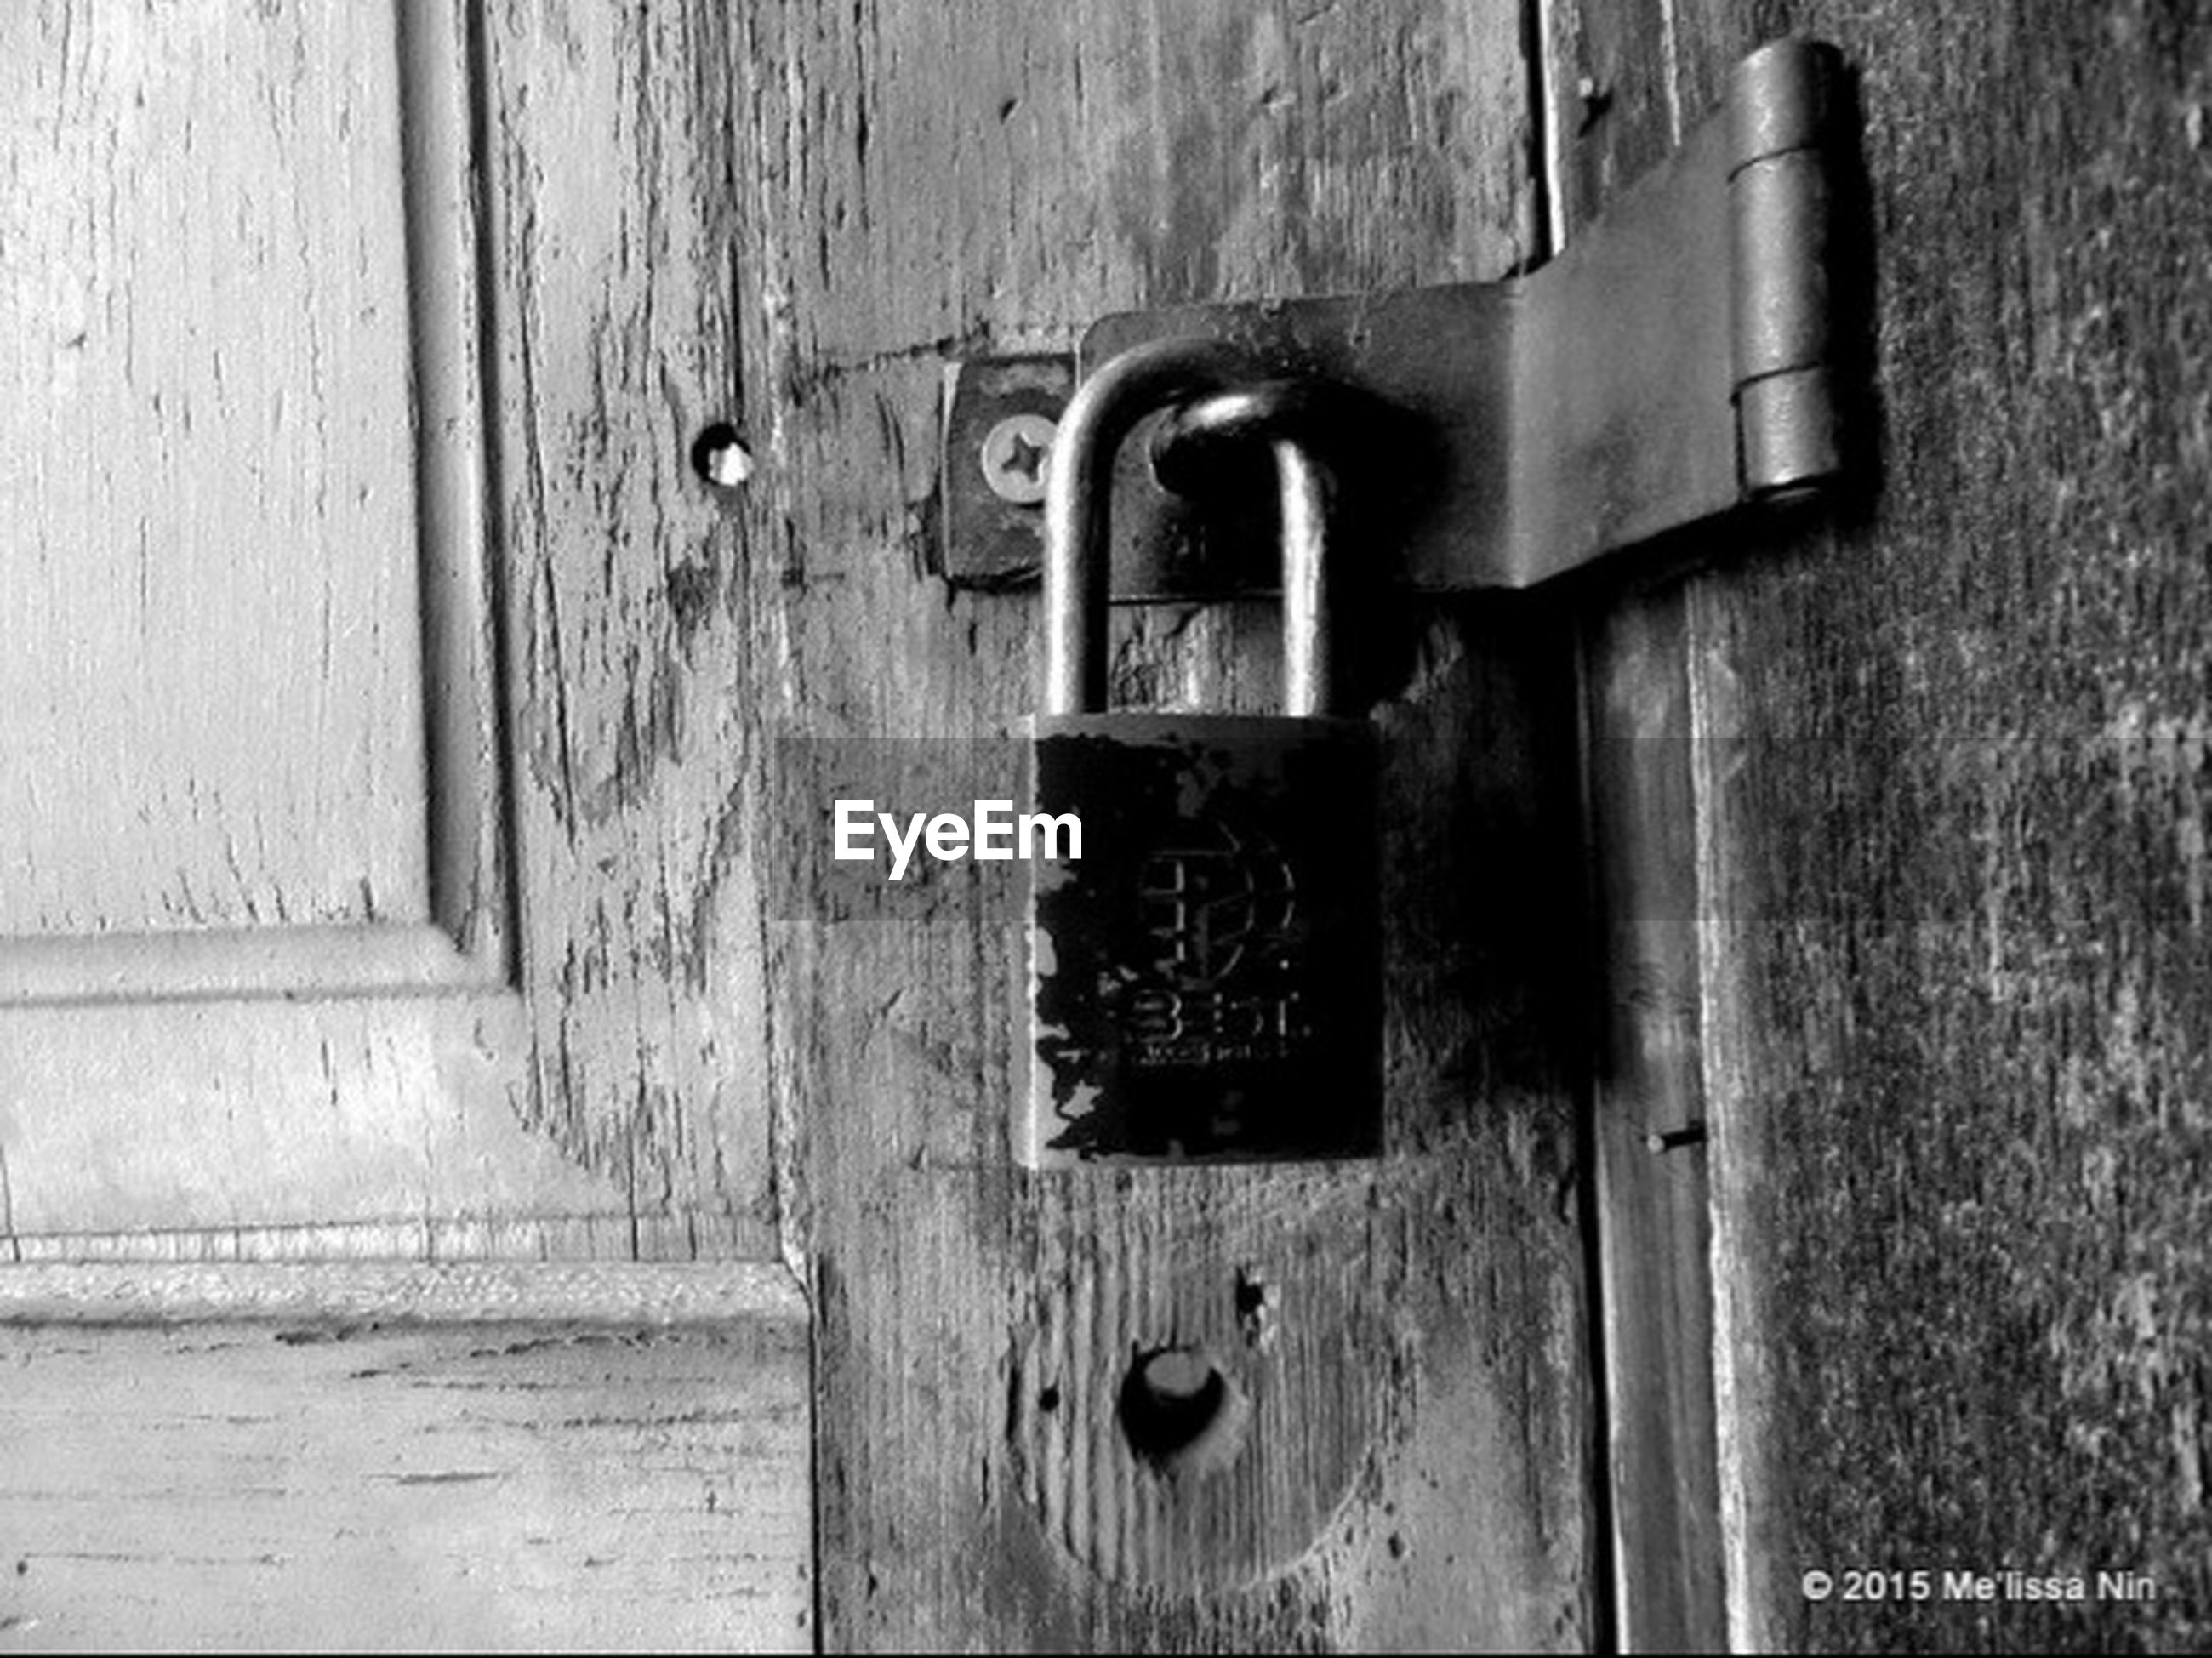 door, old, metal, closed, wood - material, protection, security, safety, built structure, lock, wooden, weathered, wall - building feature, close-up, rusty, architecture, building exterior, house, wood, padlock